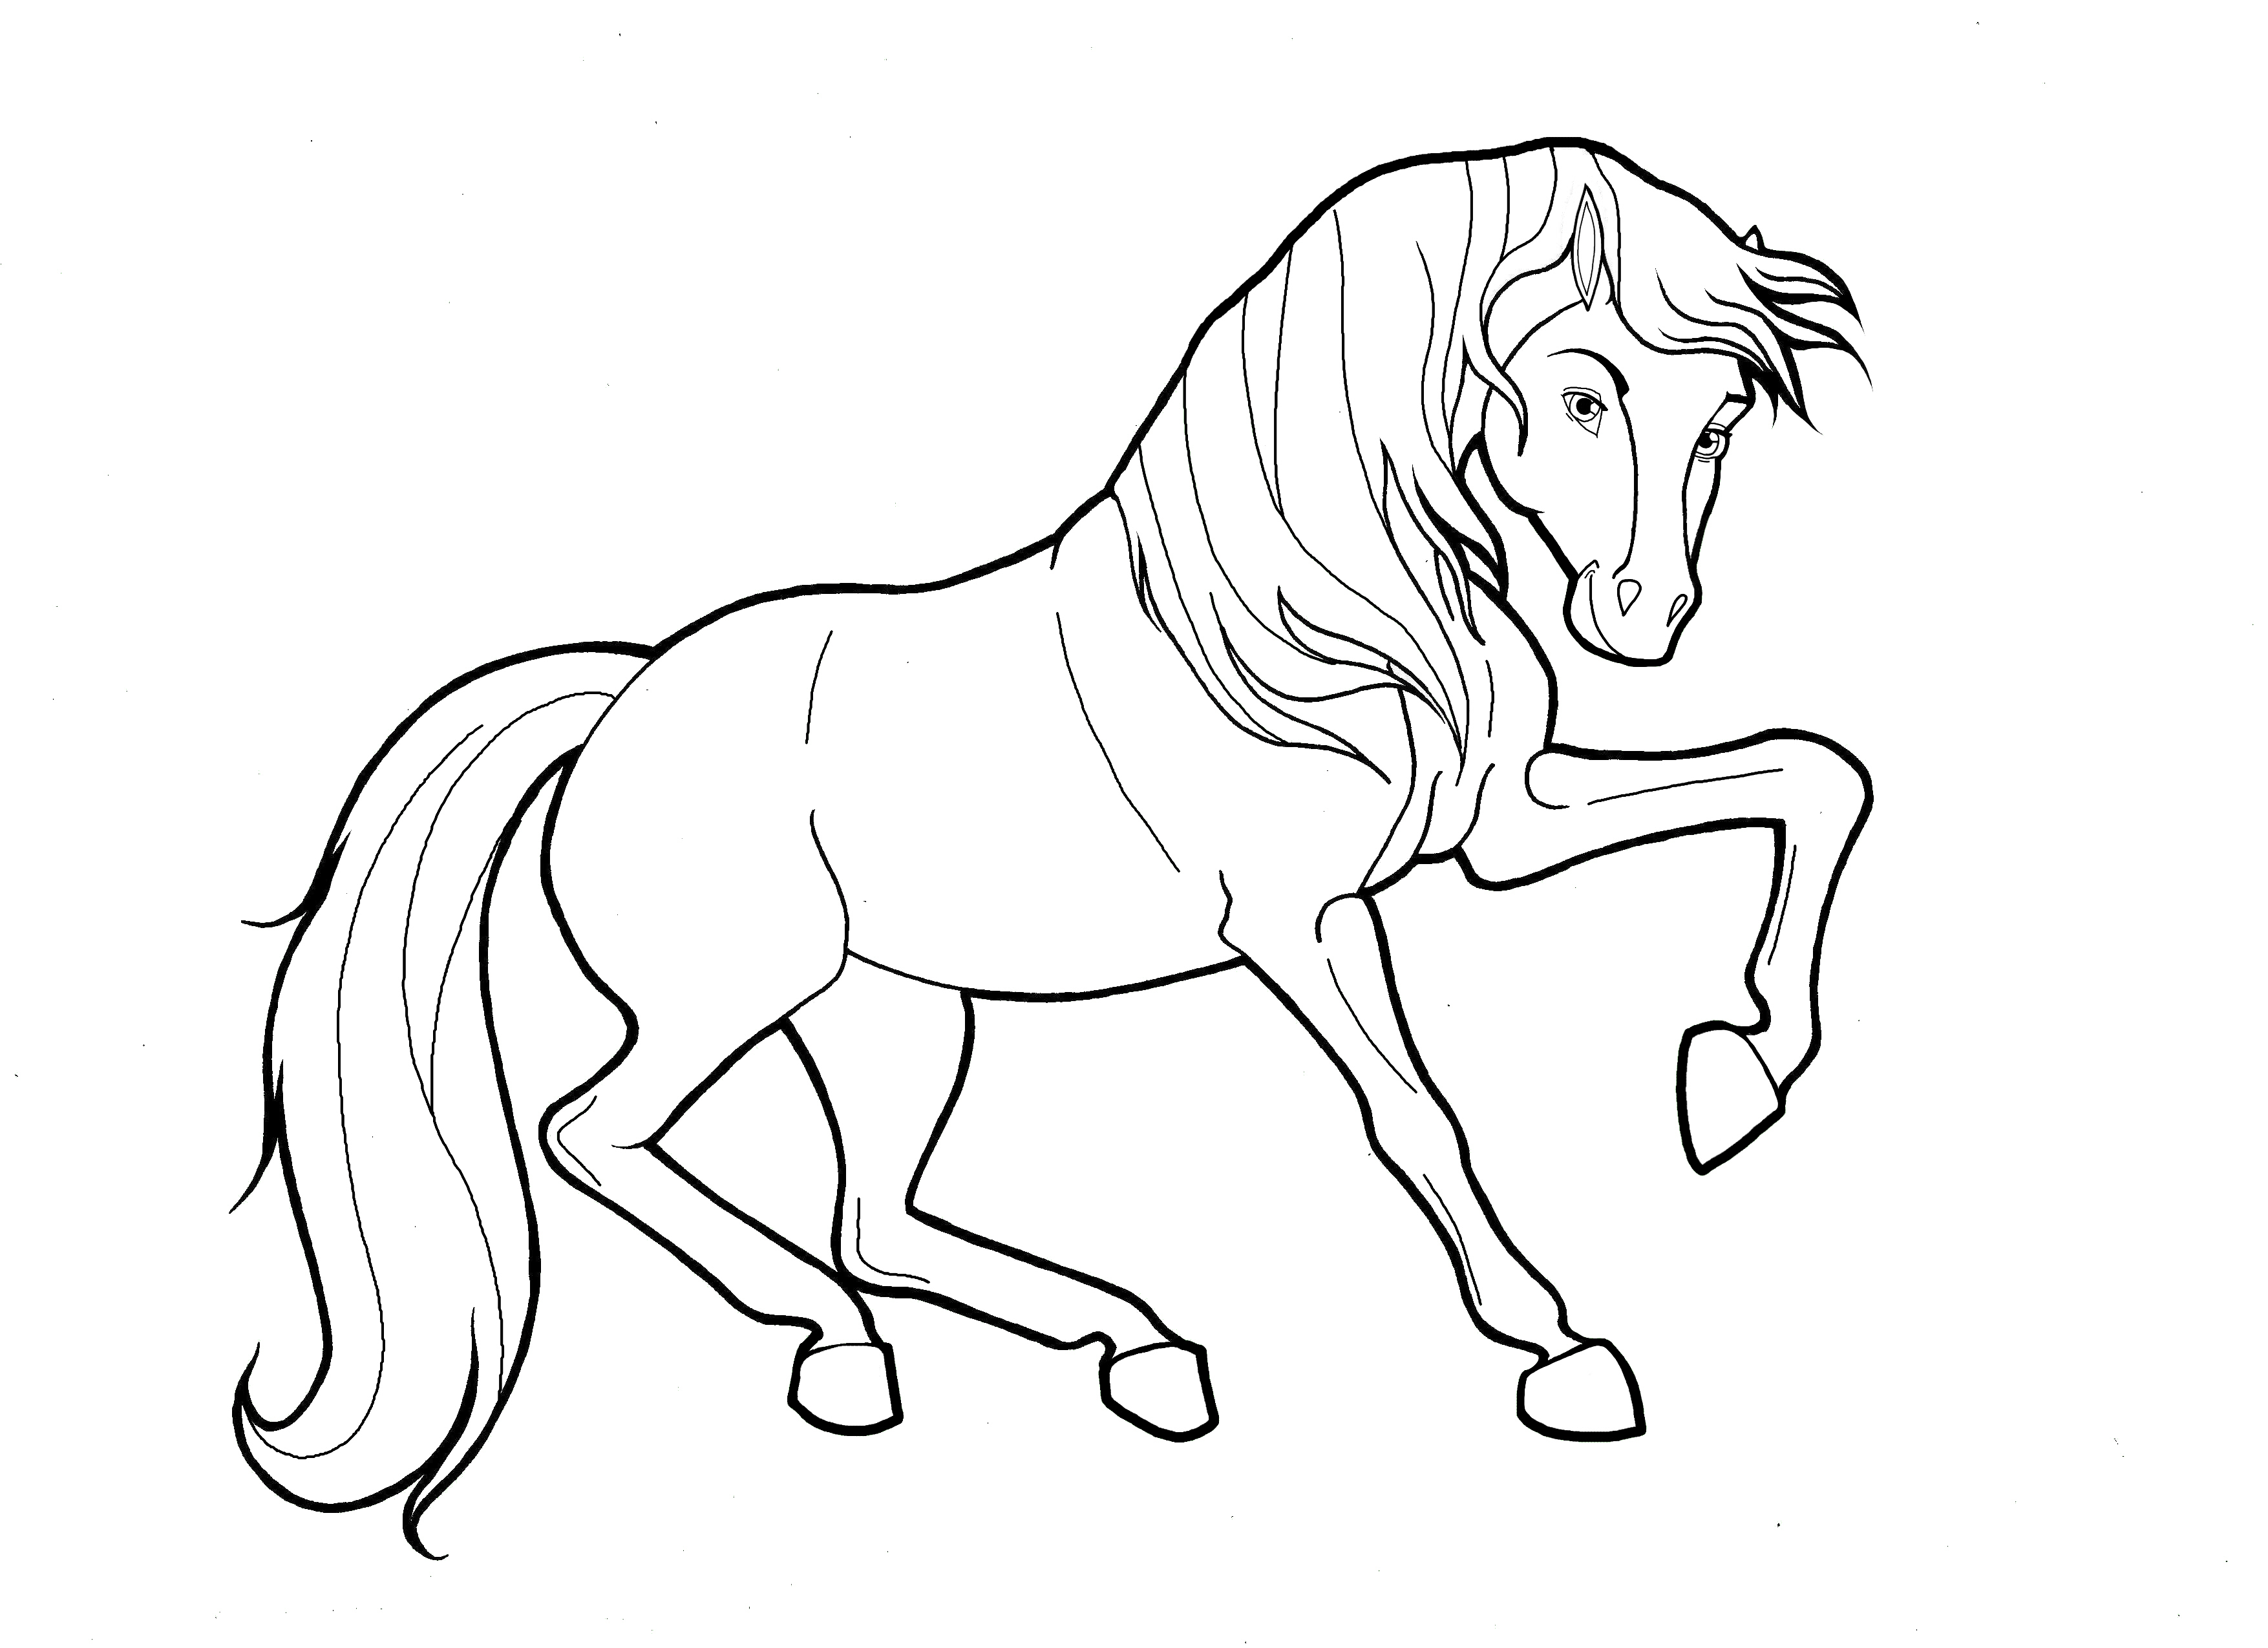 horse coloring sheets to print palomino horse coloring pages download and print for free horse to coloring print sheets